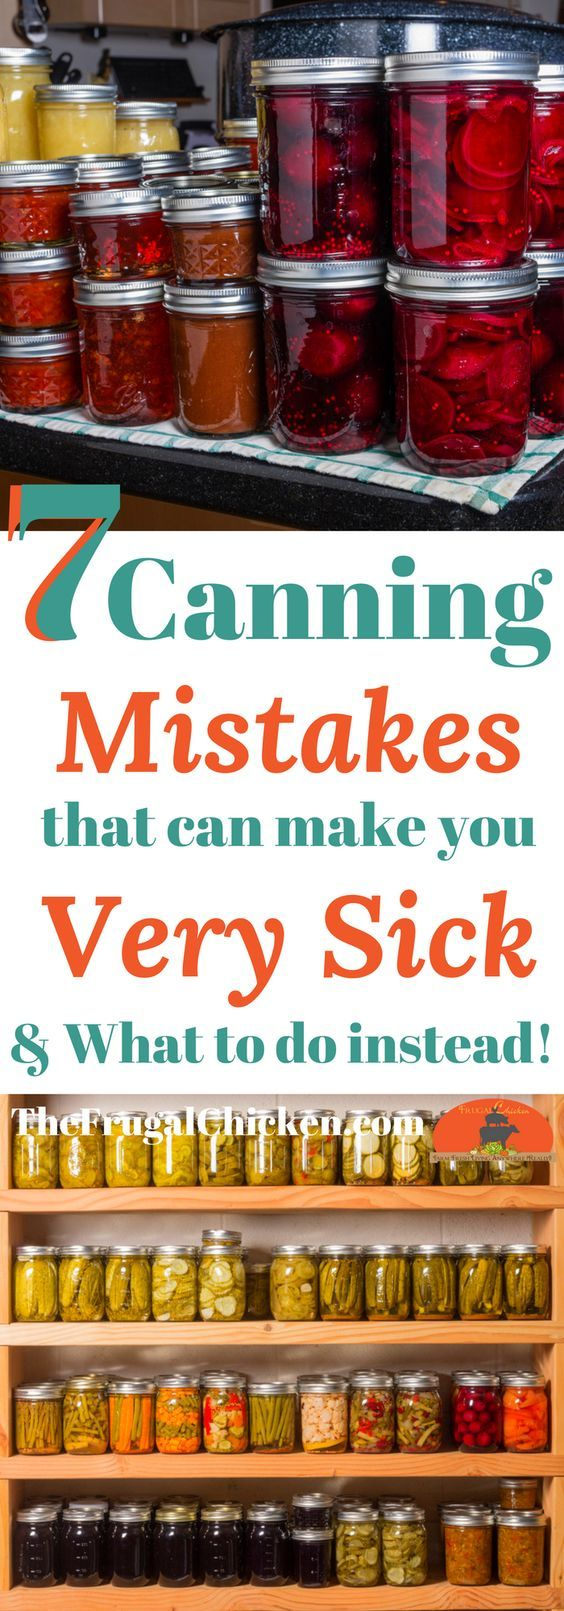 There's some pretty bad canning advice on the internet that can make you sick. Here's 7 common canning mistakes and what you should do instead.